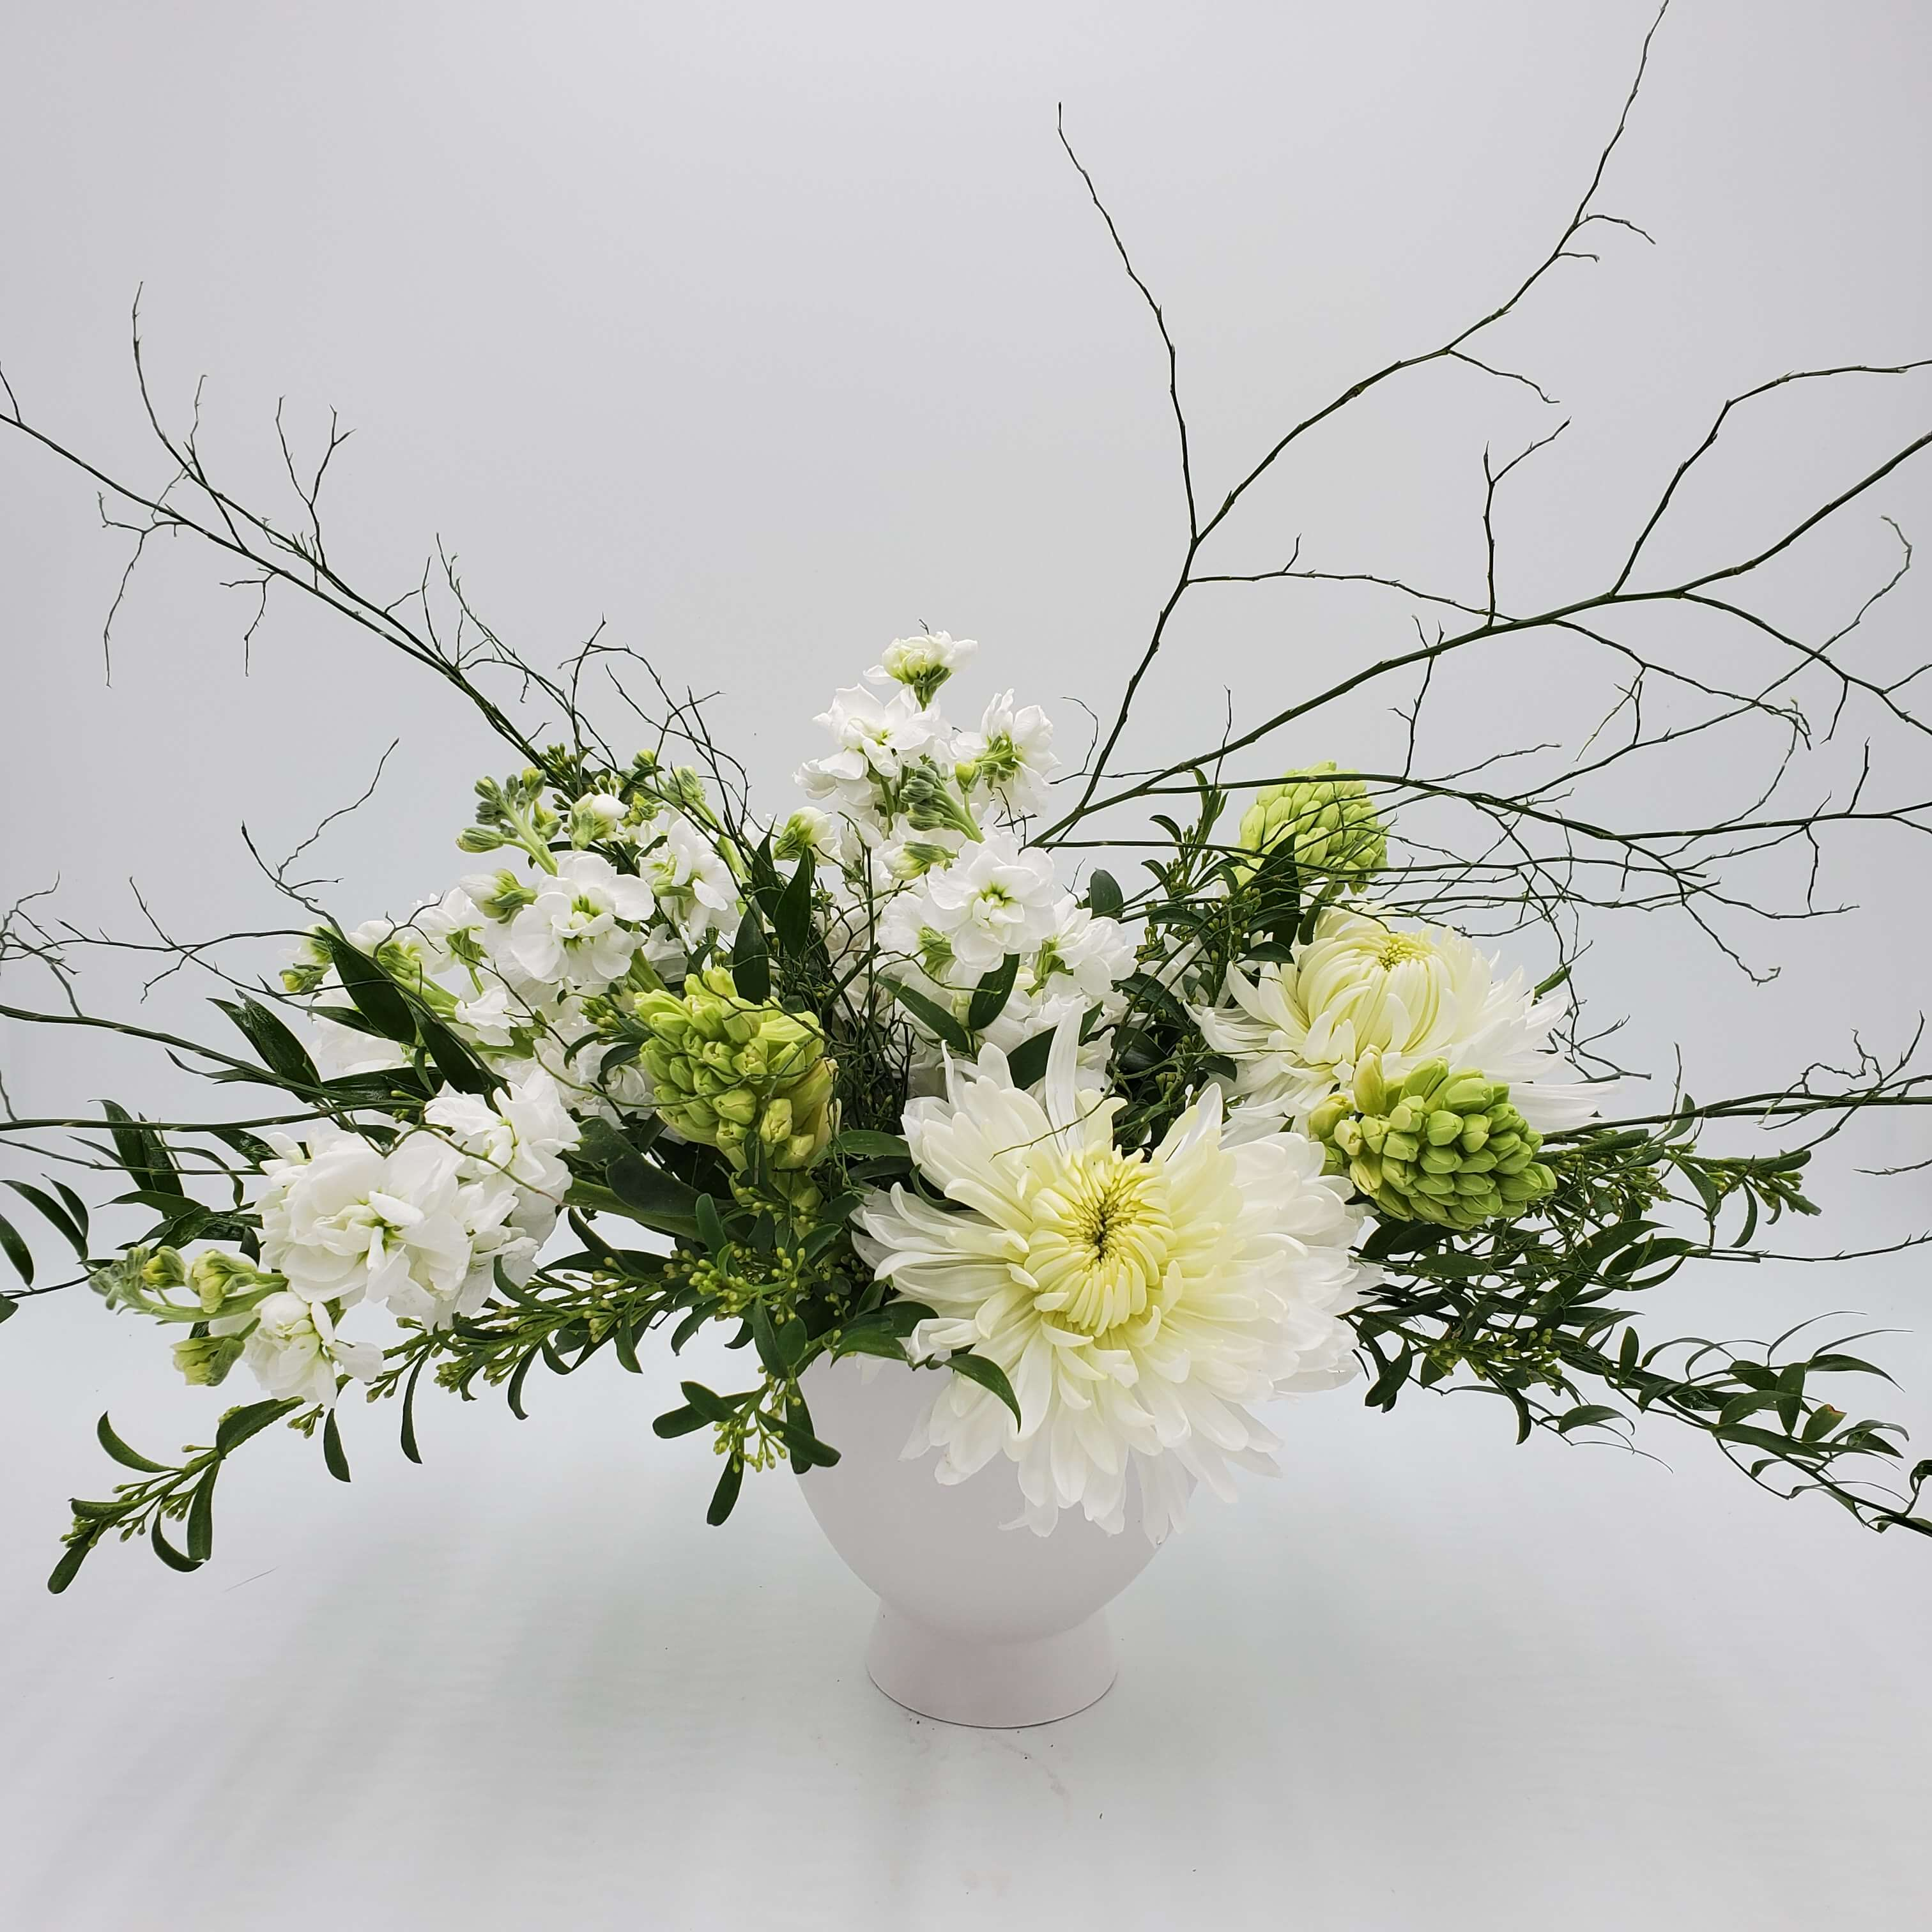 Naturalistic white floral design